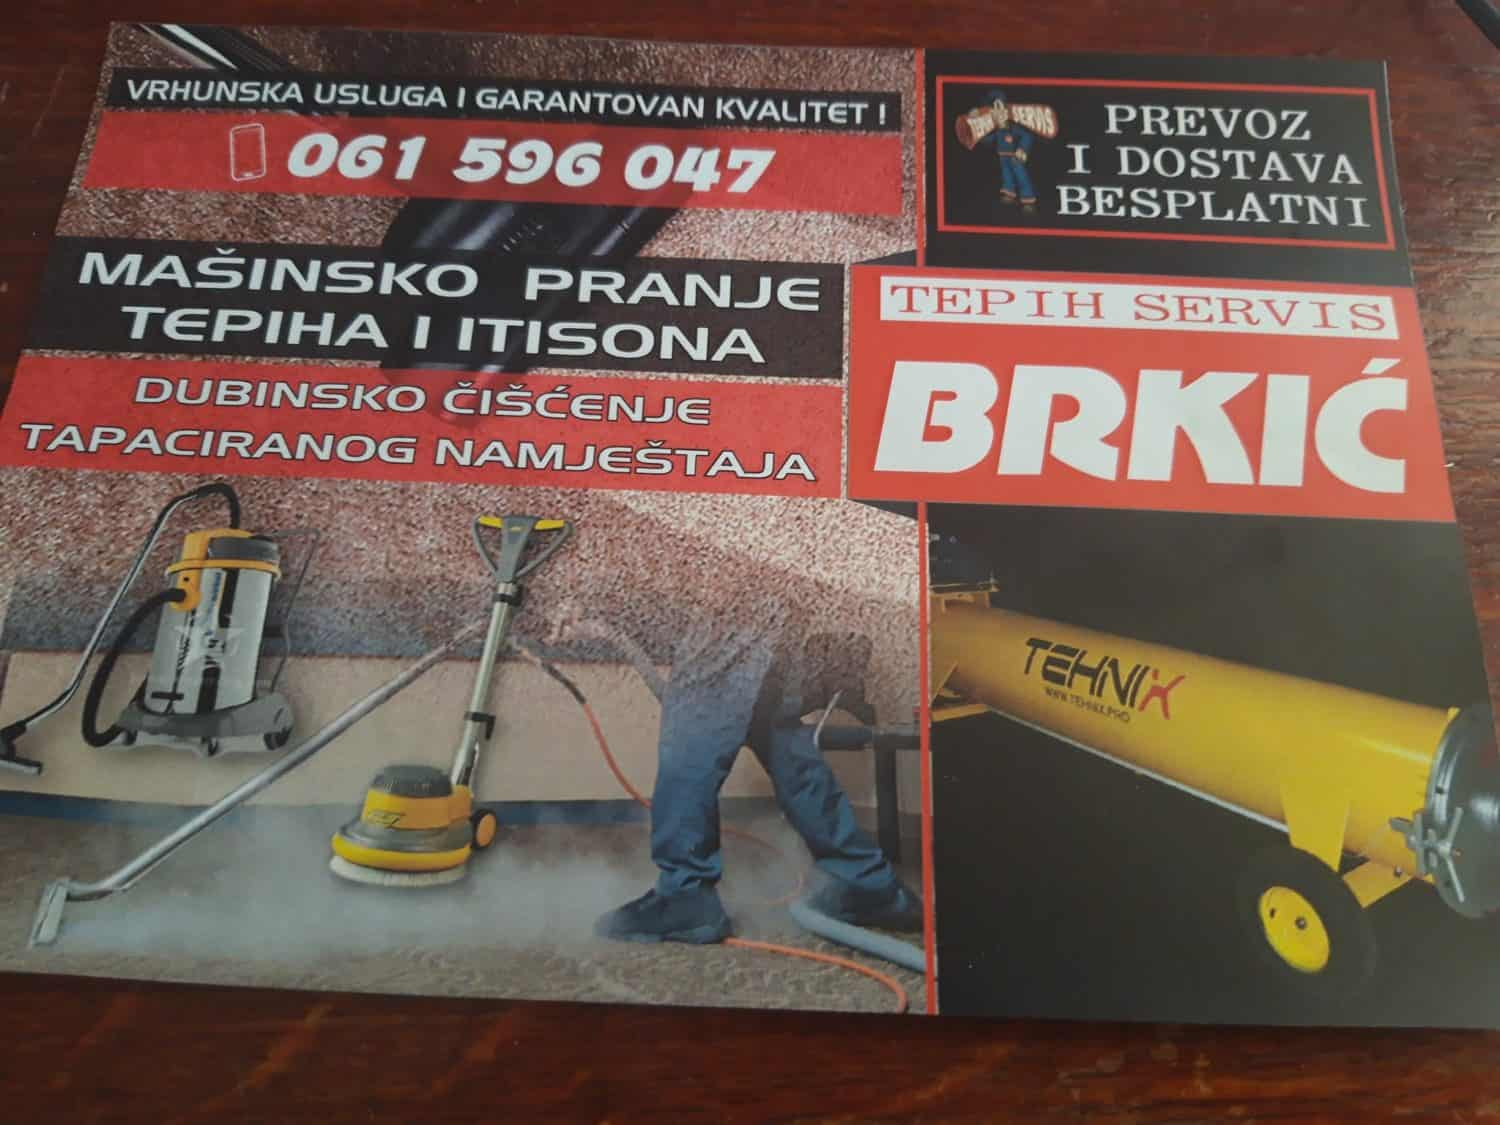 tepis servis brkic